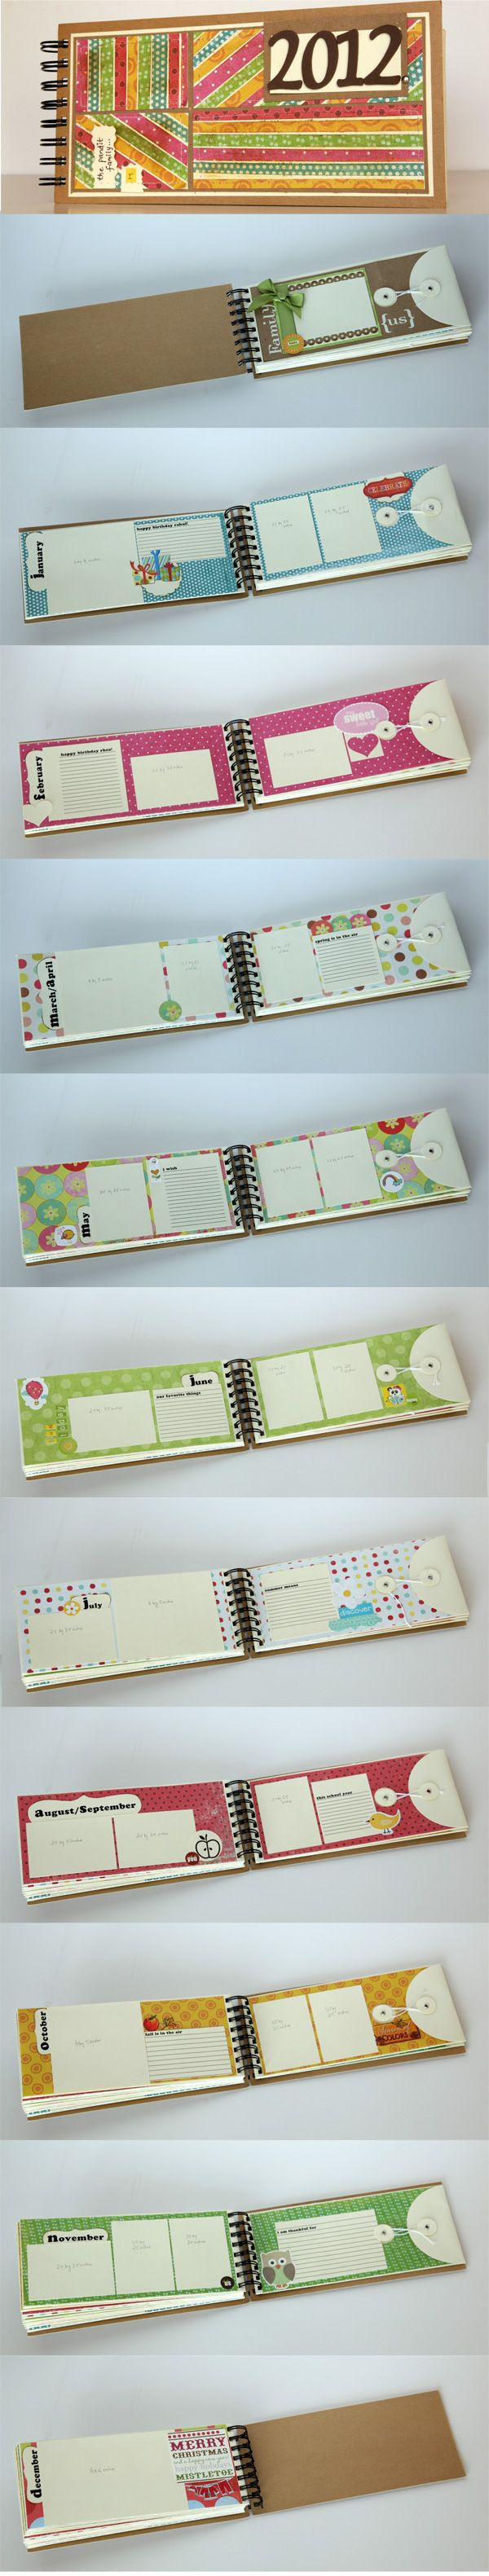 make a 2012 mini book in January.  Fill the pages throughout the year.